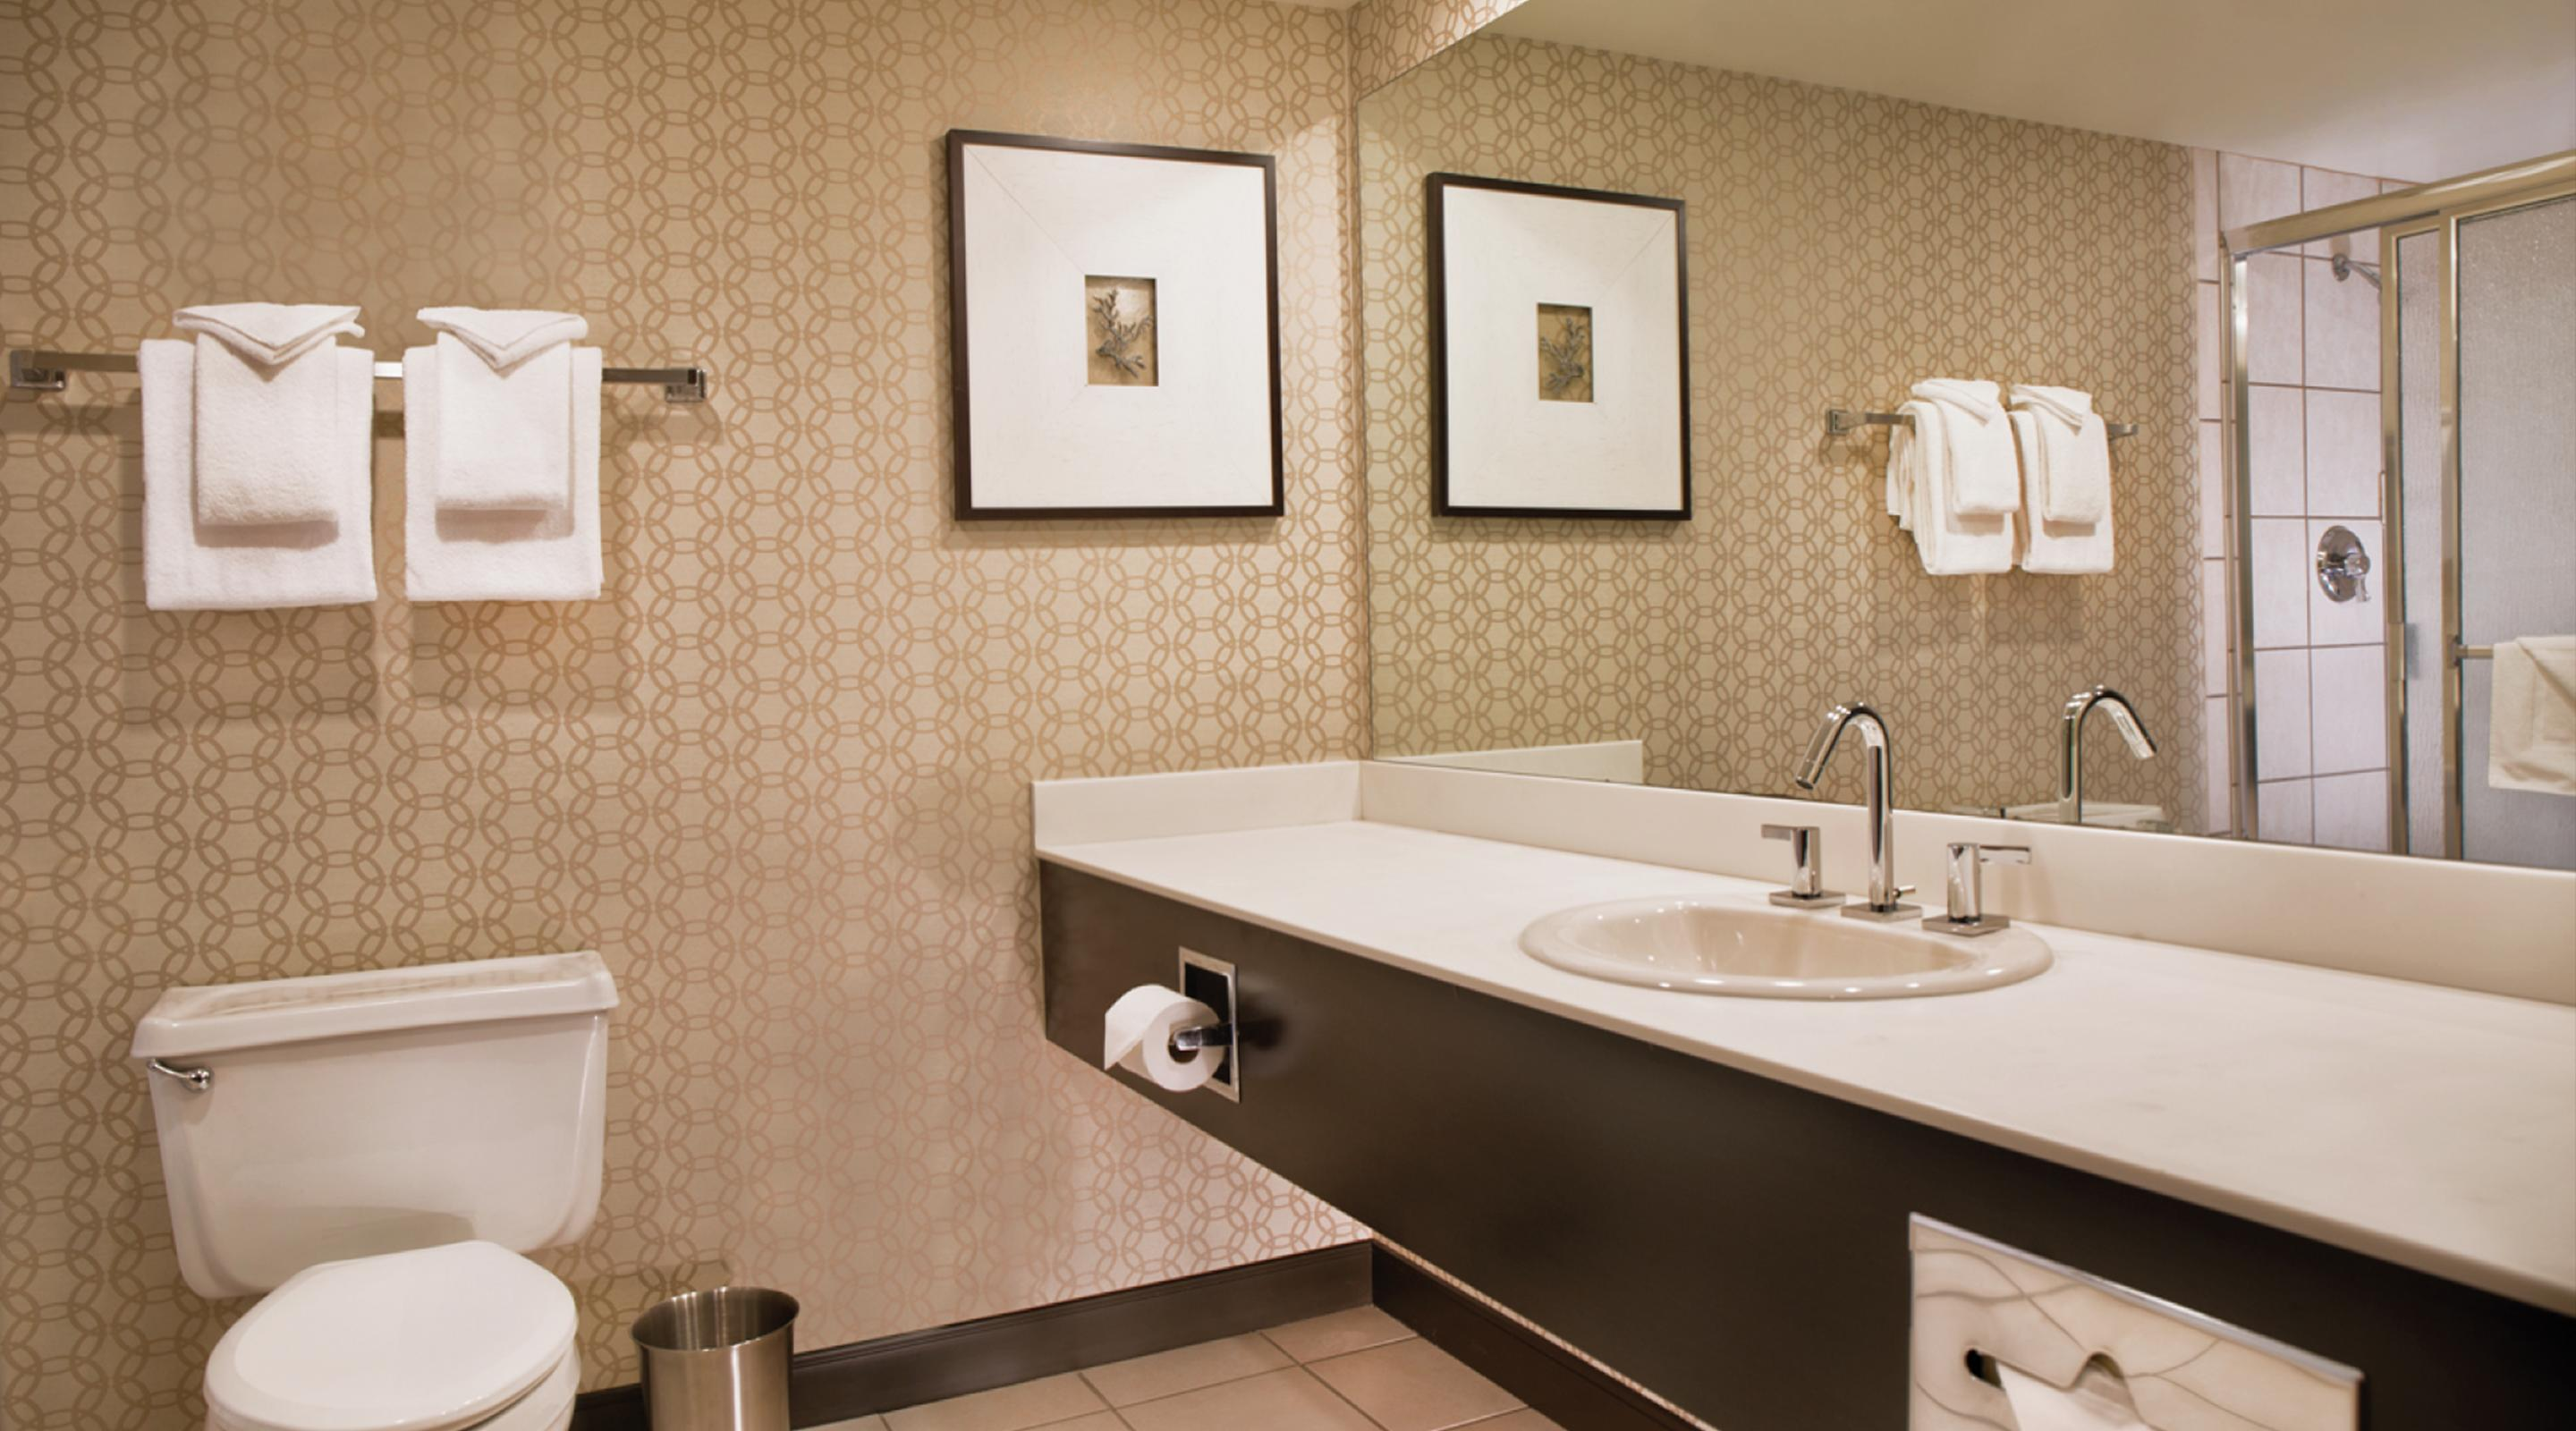 This is an image of the Royal Tower Bathroom.